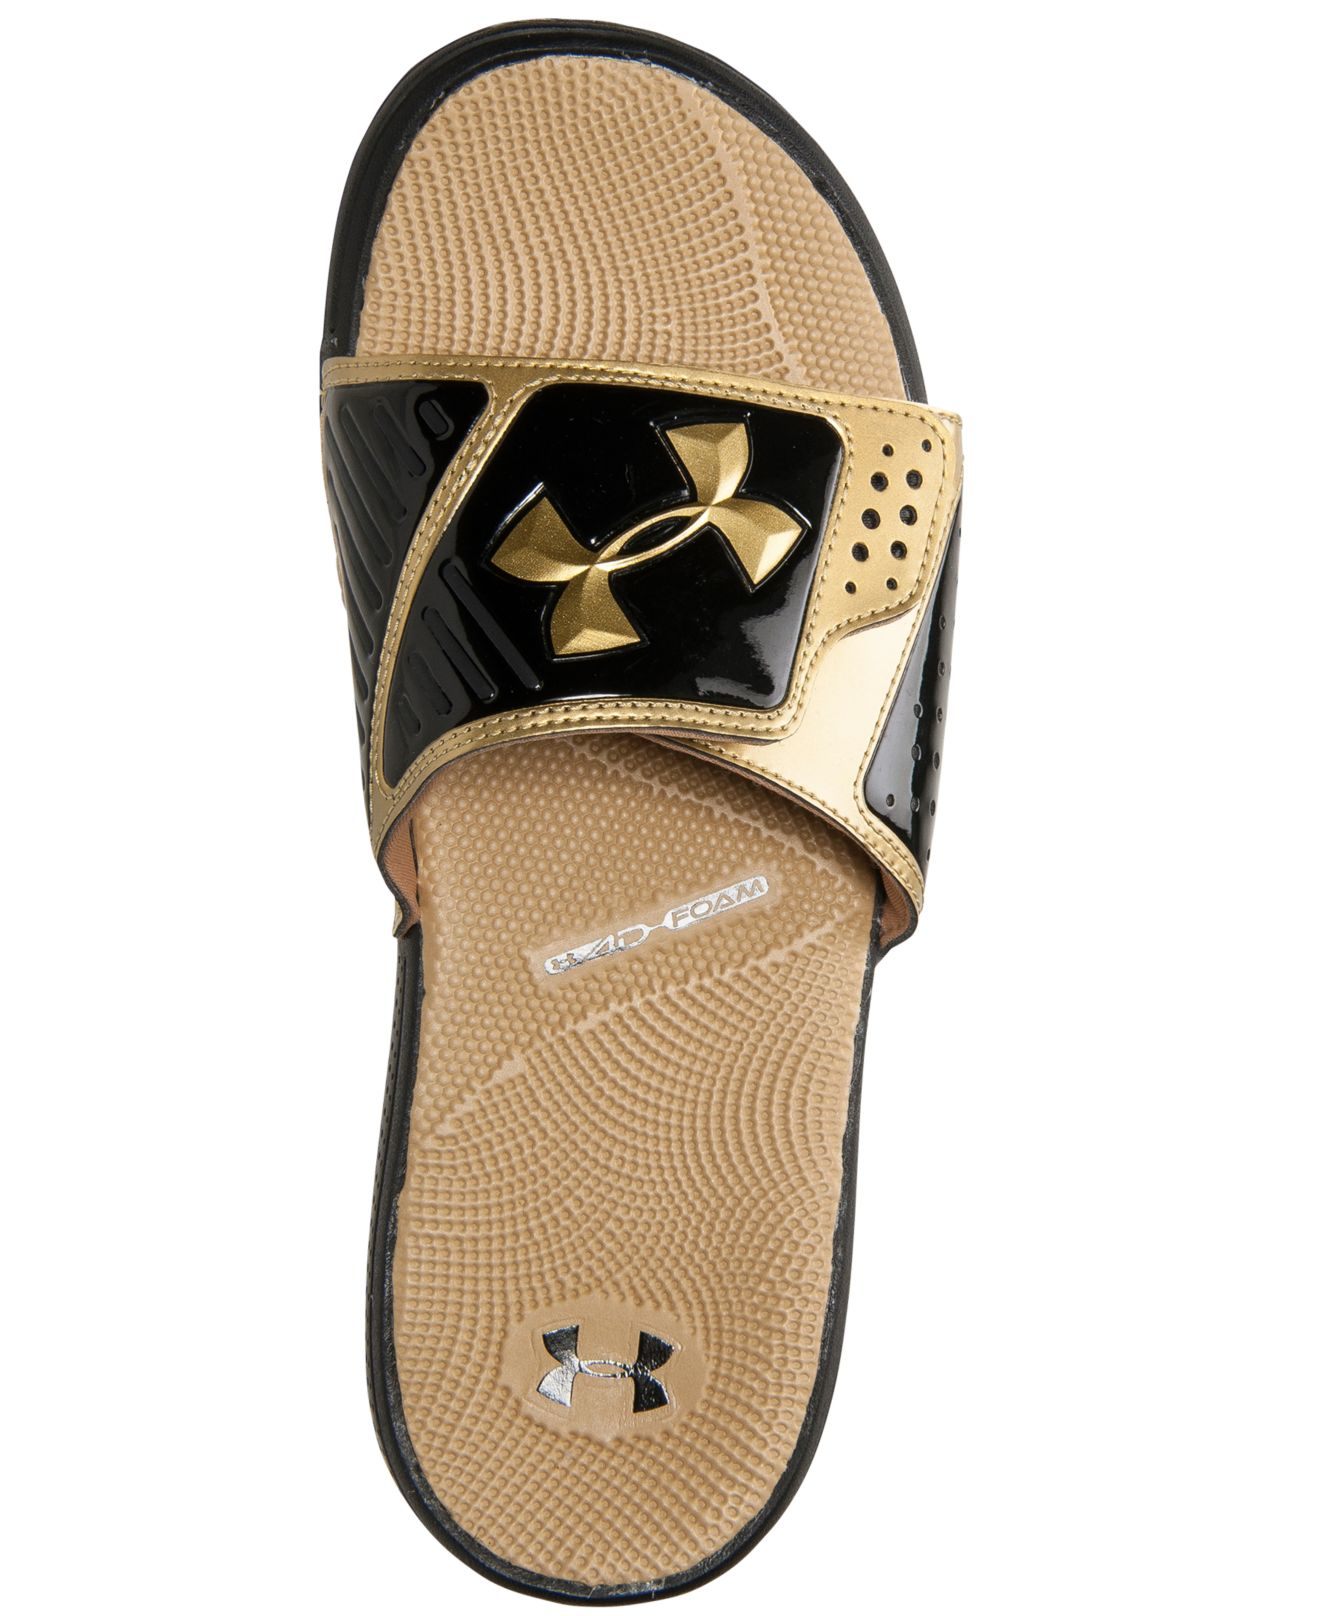 f357292b2ee2 Under Armour Men S Micro G Ev Slide Sandals From Finish Line in ...